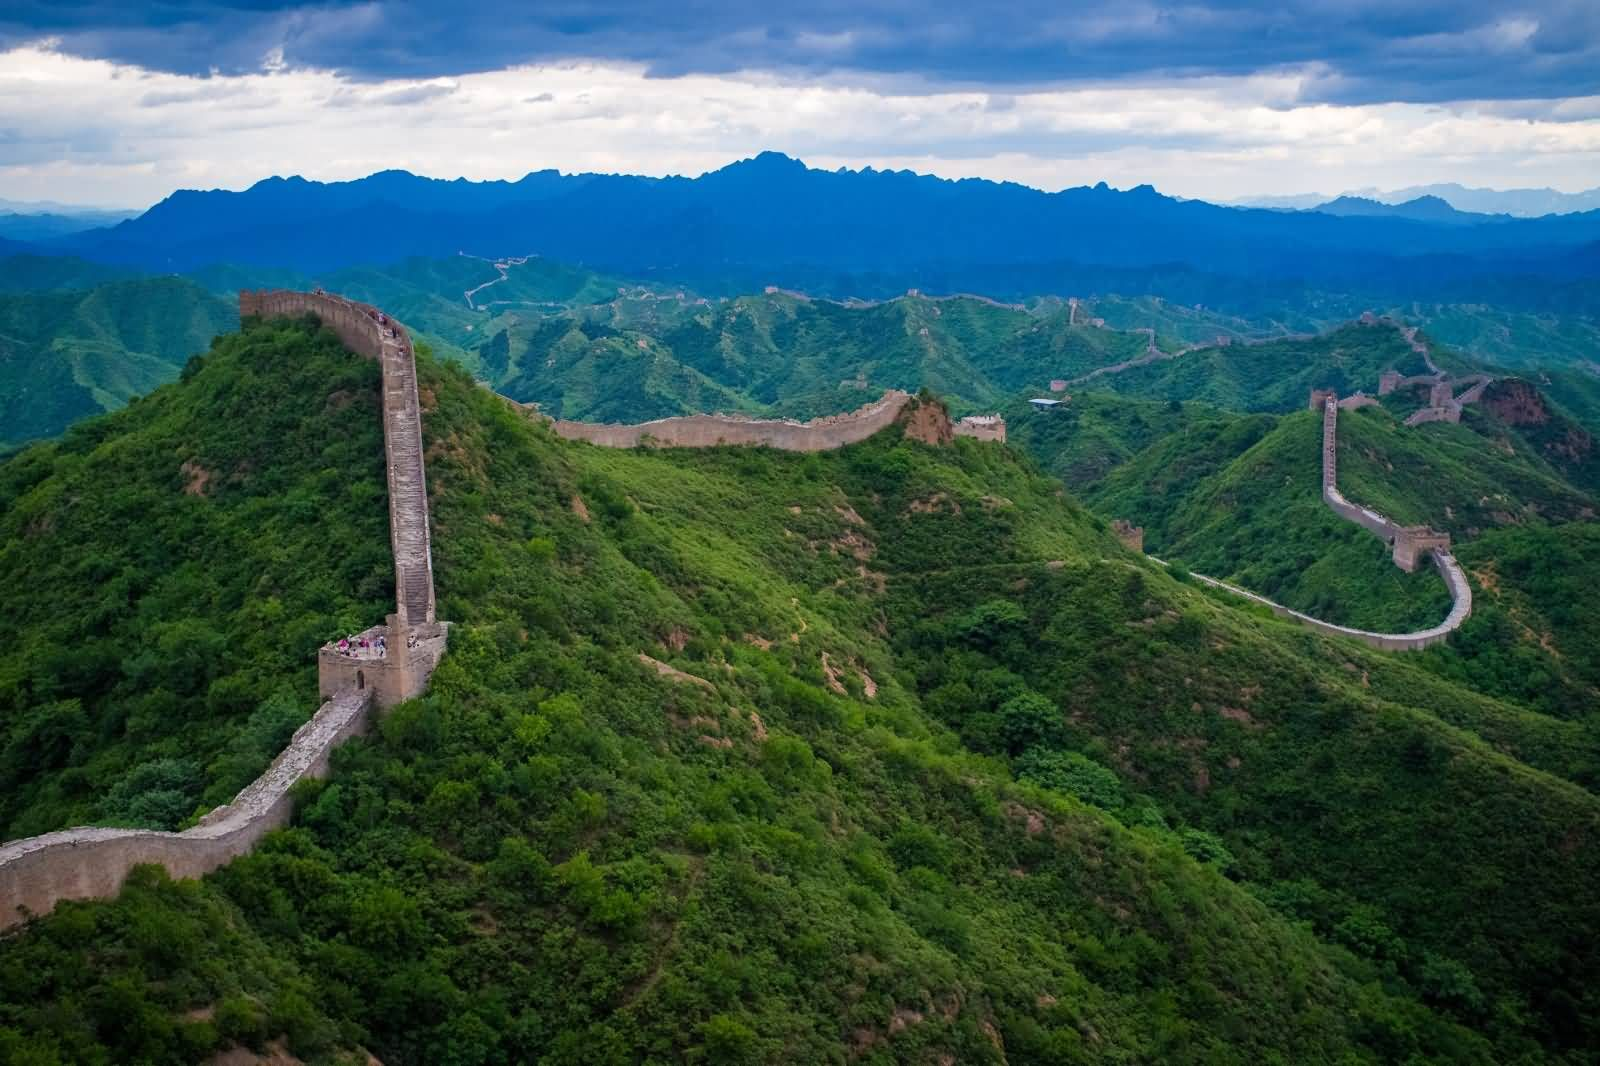 aqaqaqaqaqaqa in 2020 great wall of china china travel on great wall of china id=83530